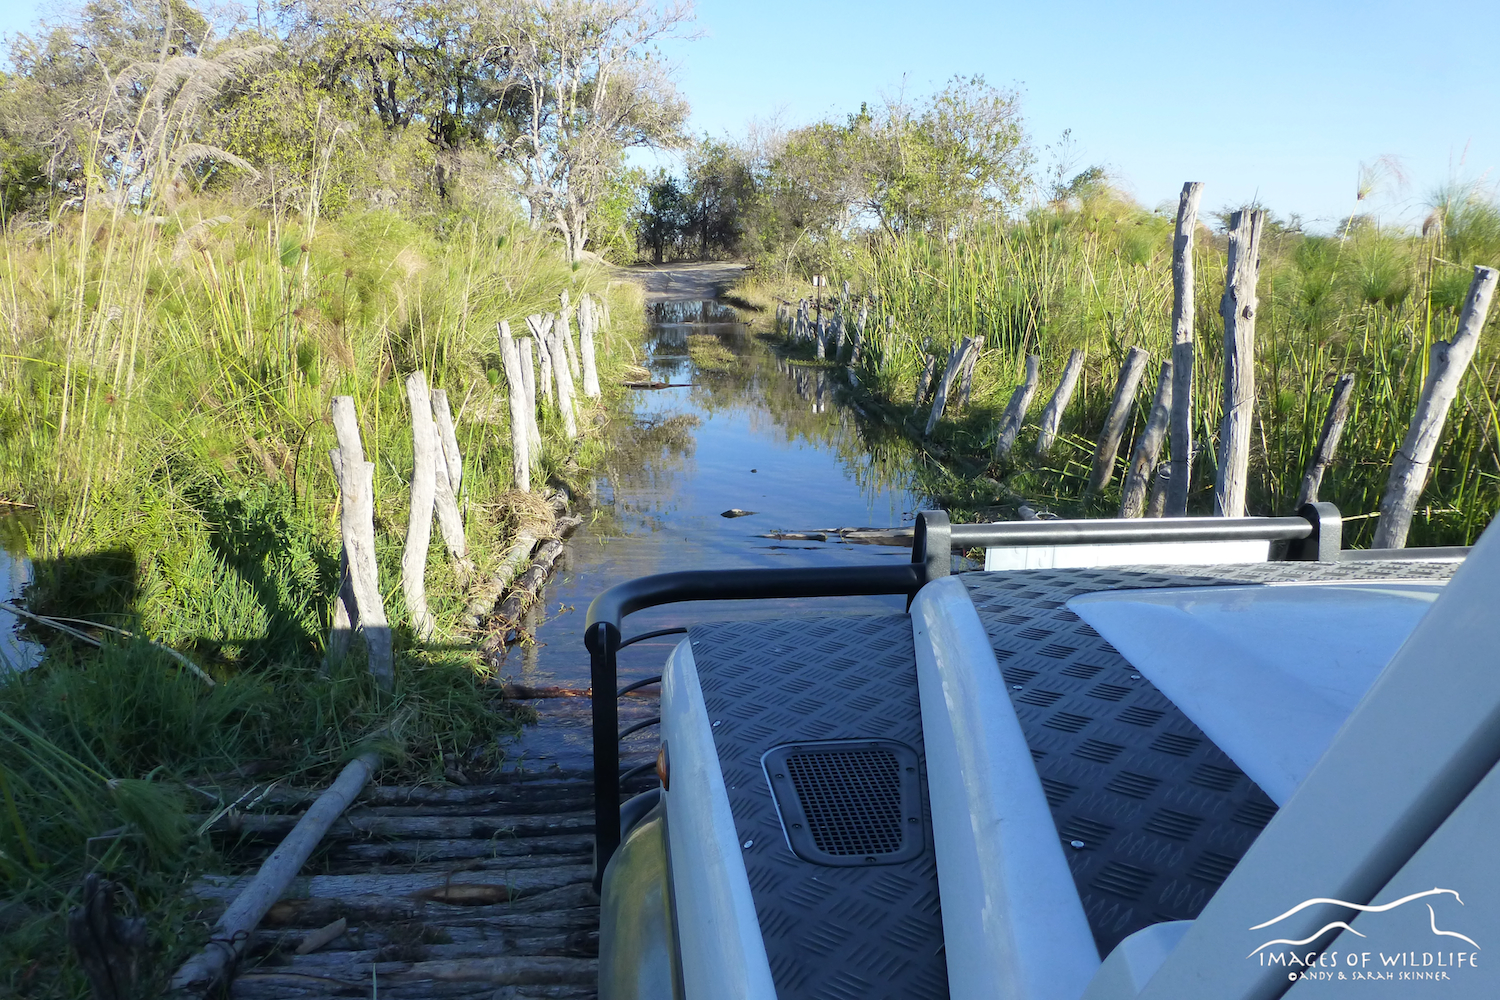 Decidely ricketty bridges in Botswana